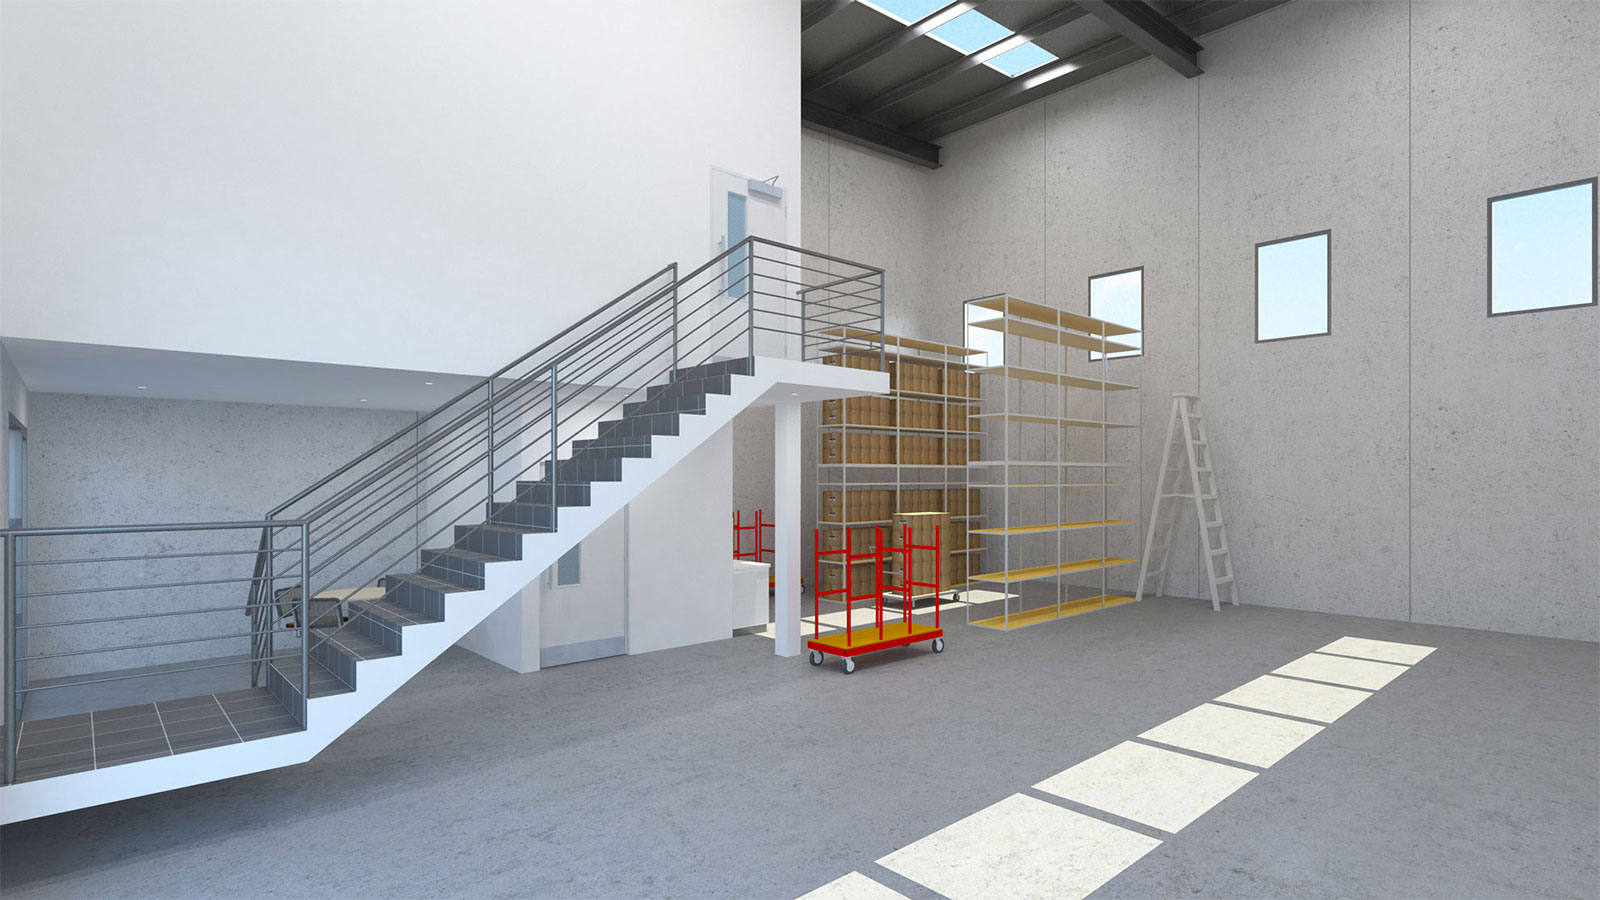 Easy loading bays; interior adjacent office access